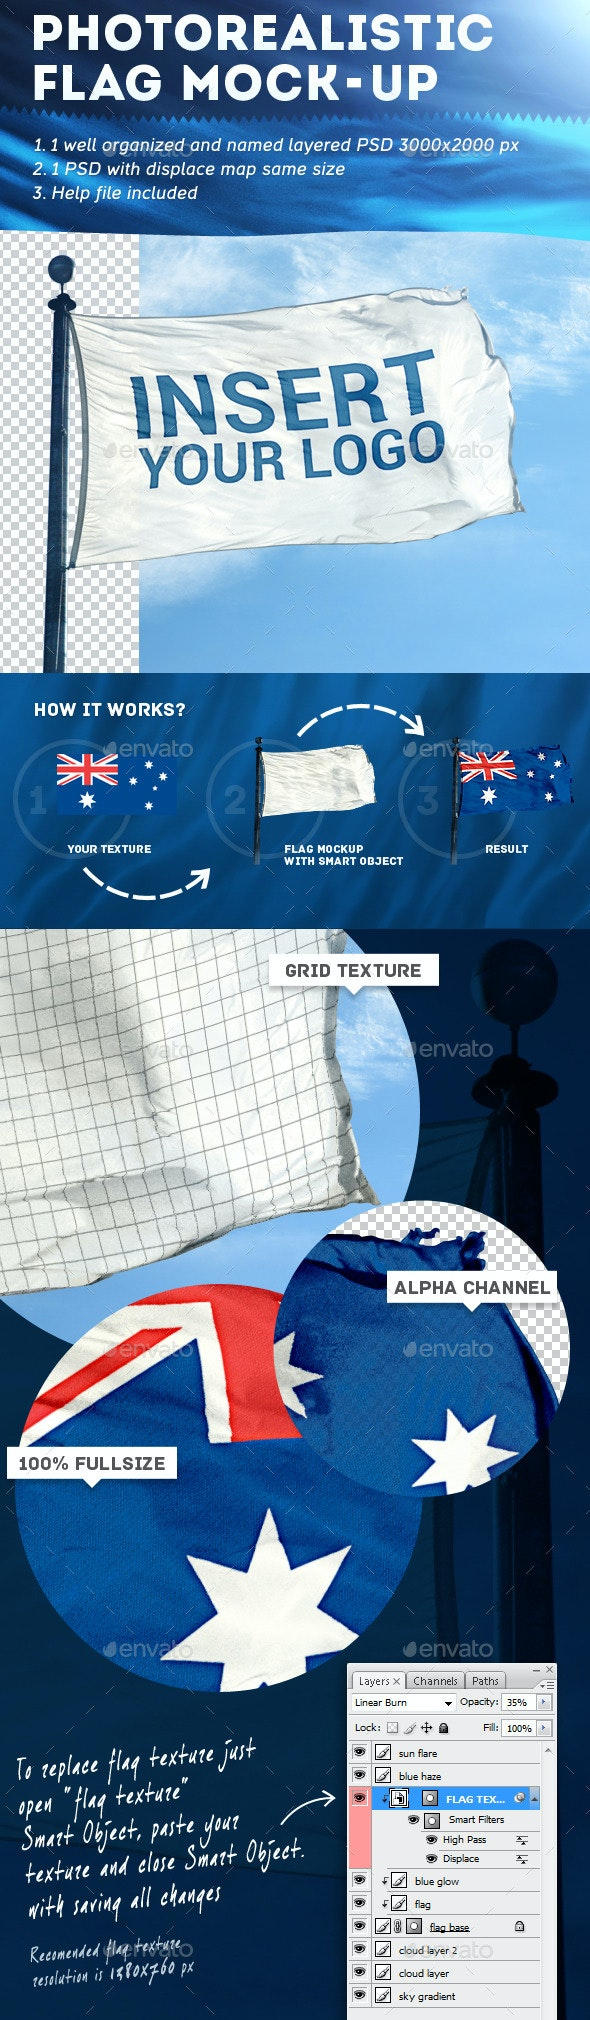 Photorealistic Flag Mock-Up - Miscellaneous Print